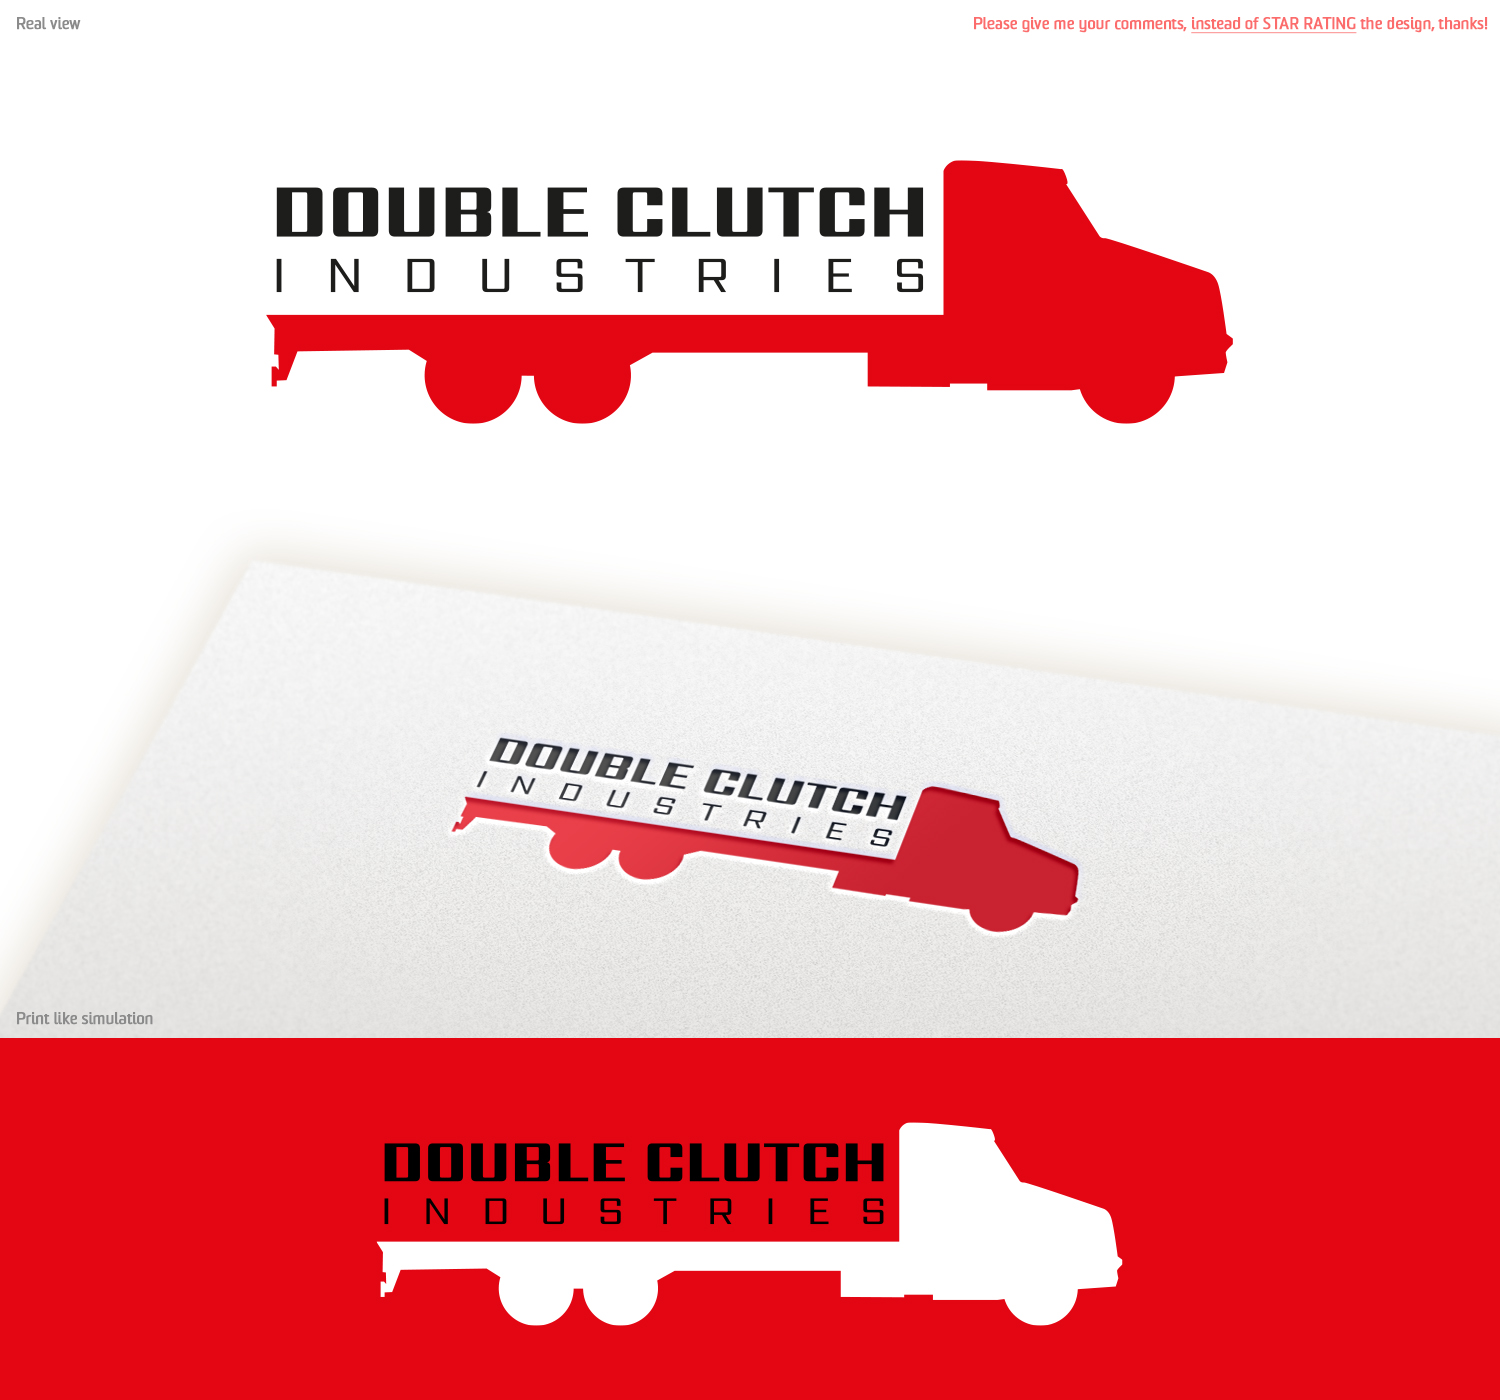 Masculine, Serious, Delivery Service Logo Design for Double